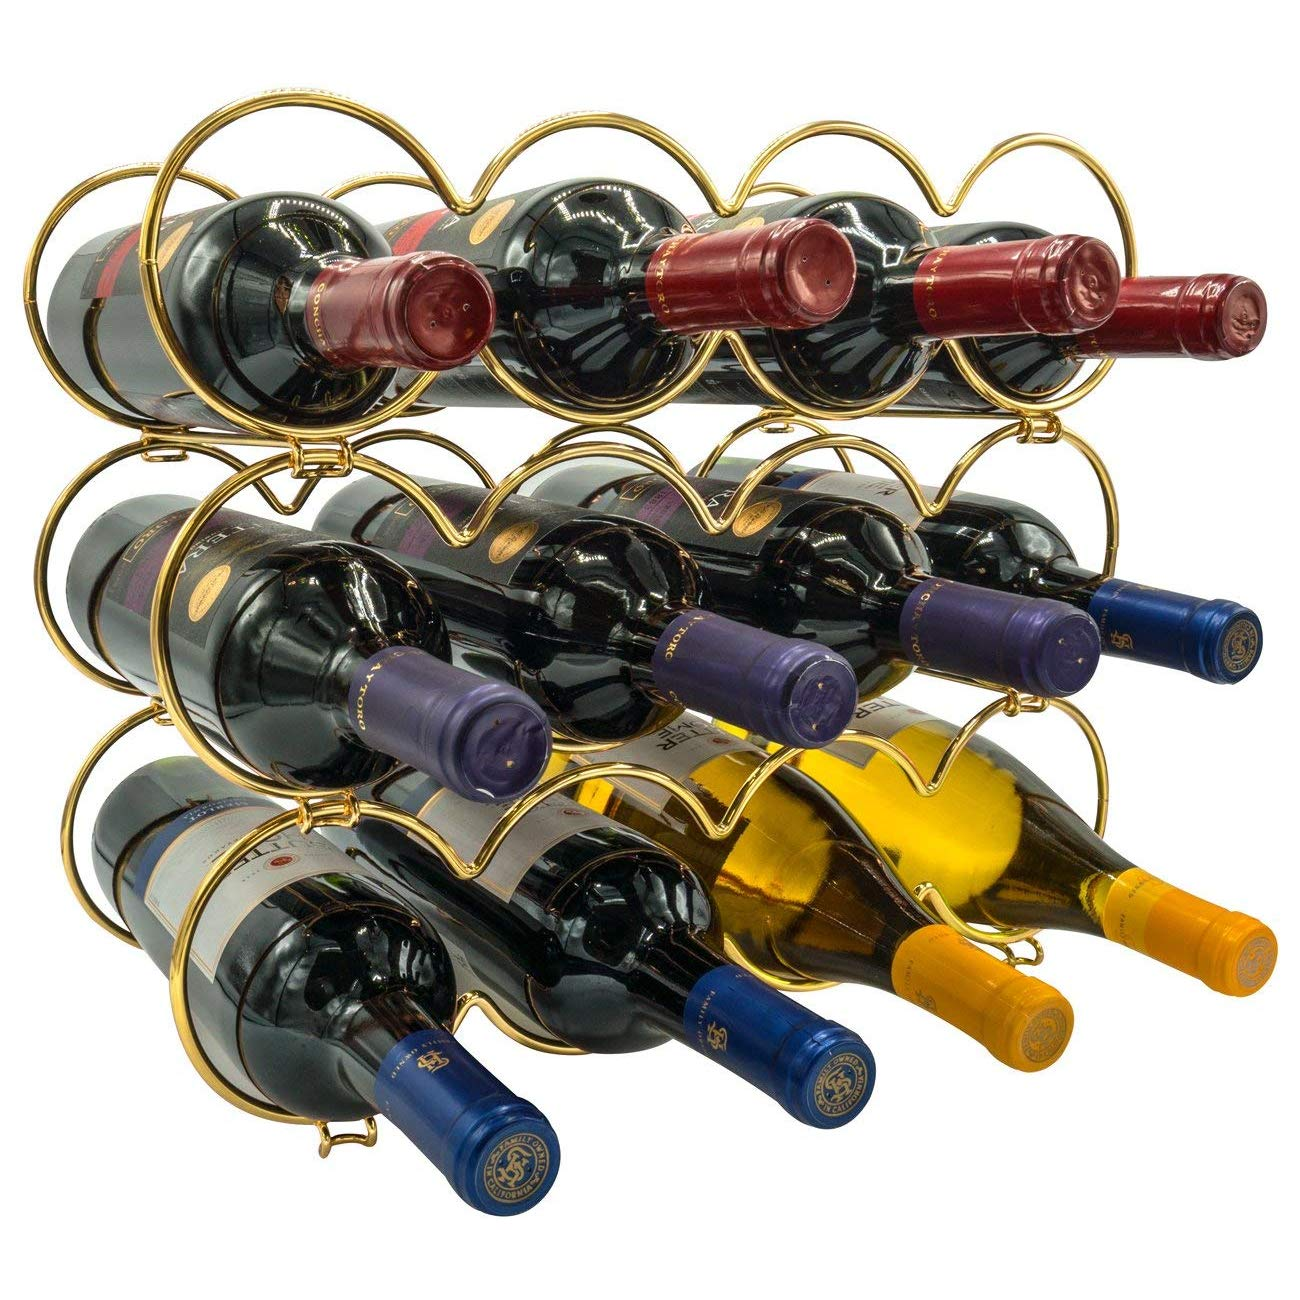 Sorbus 3-Tier Stackable Wine Rack - Round Classic Style Wine Racks for Bottles - Perfect for Bar, Wine Cellar, Basement, Cabinet, Pantry, etc - Hold 12 Bottles, Metal (Round Gold)